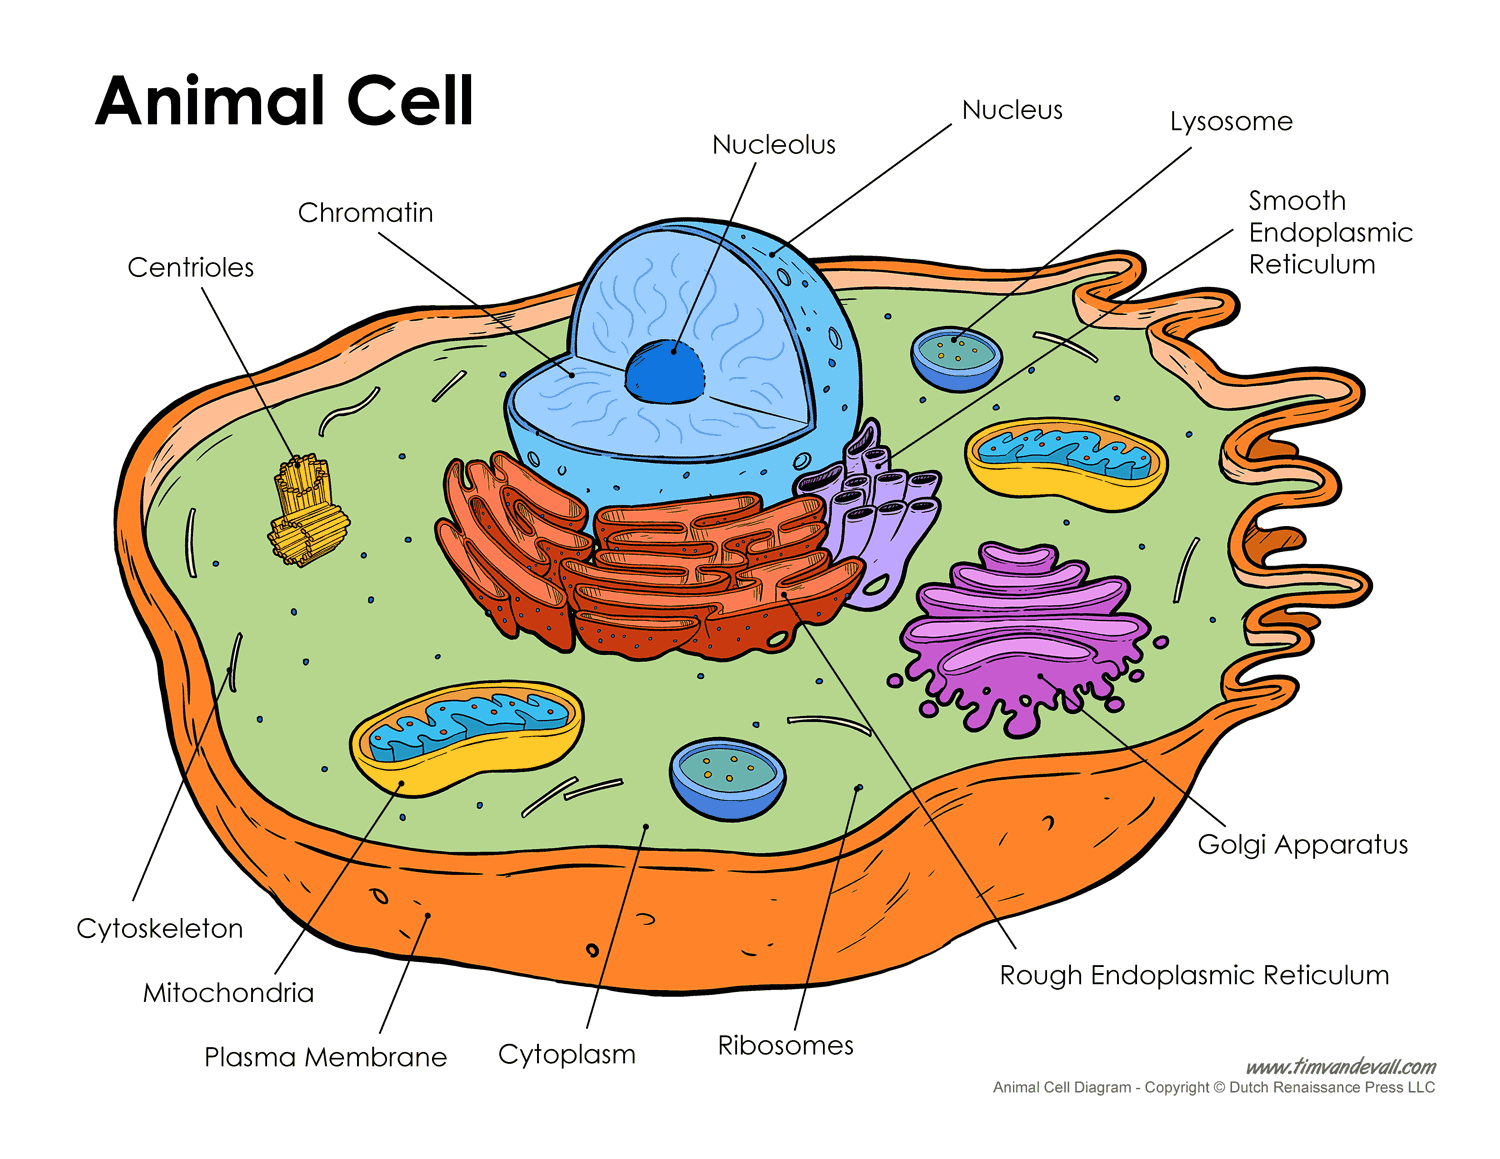 Free Animal Cell Unlabeled, Download Free Clip Art, Free.